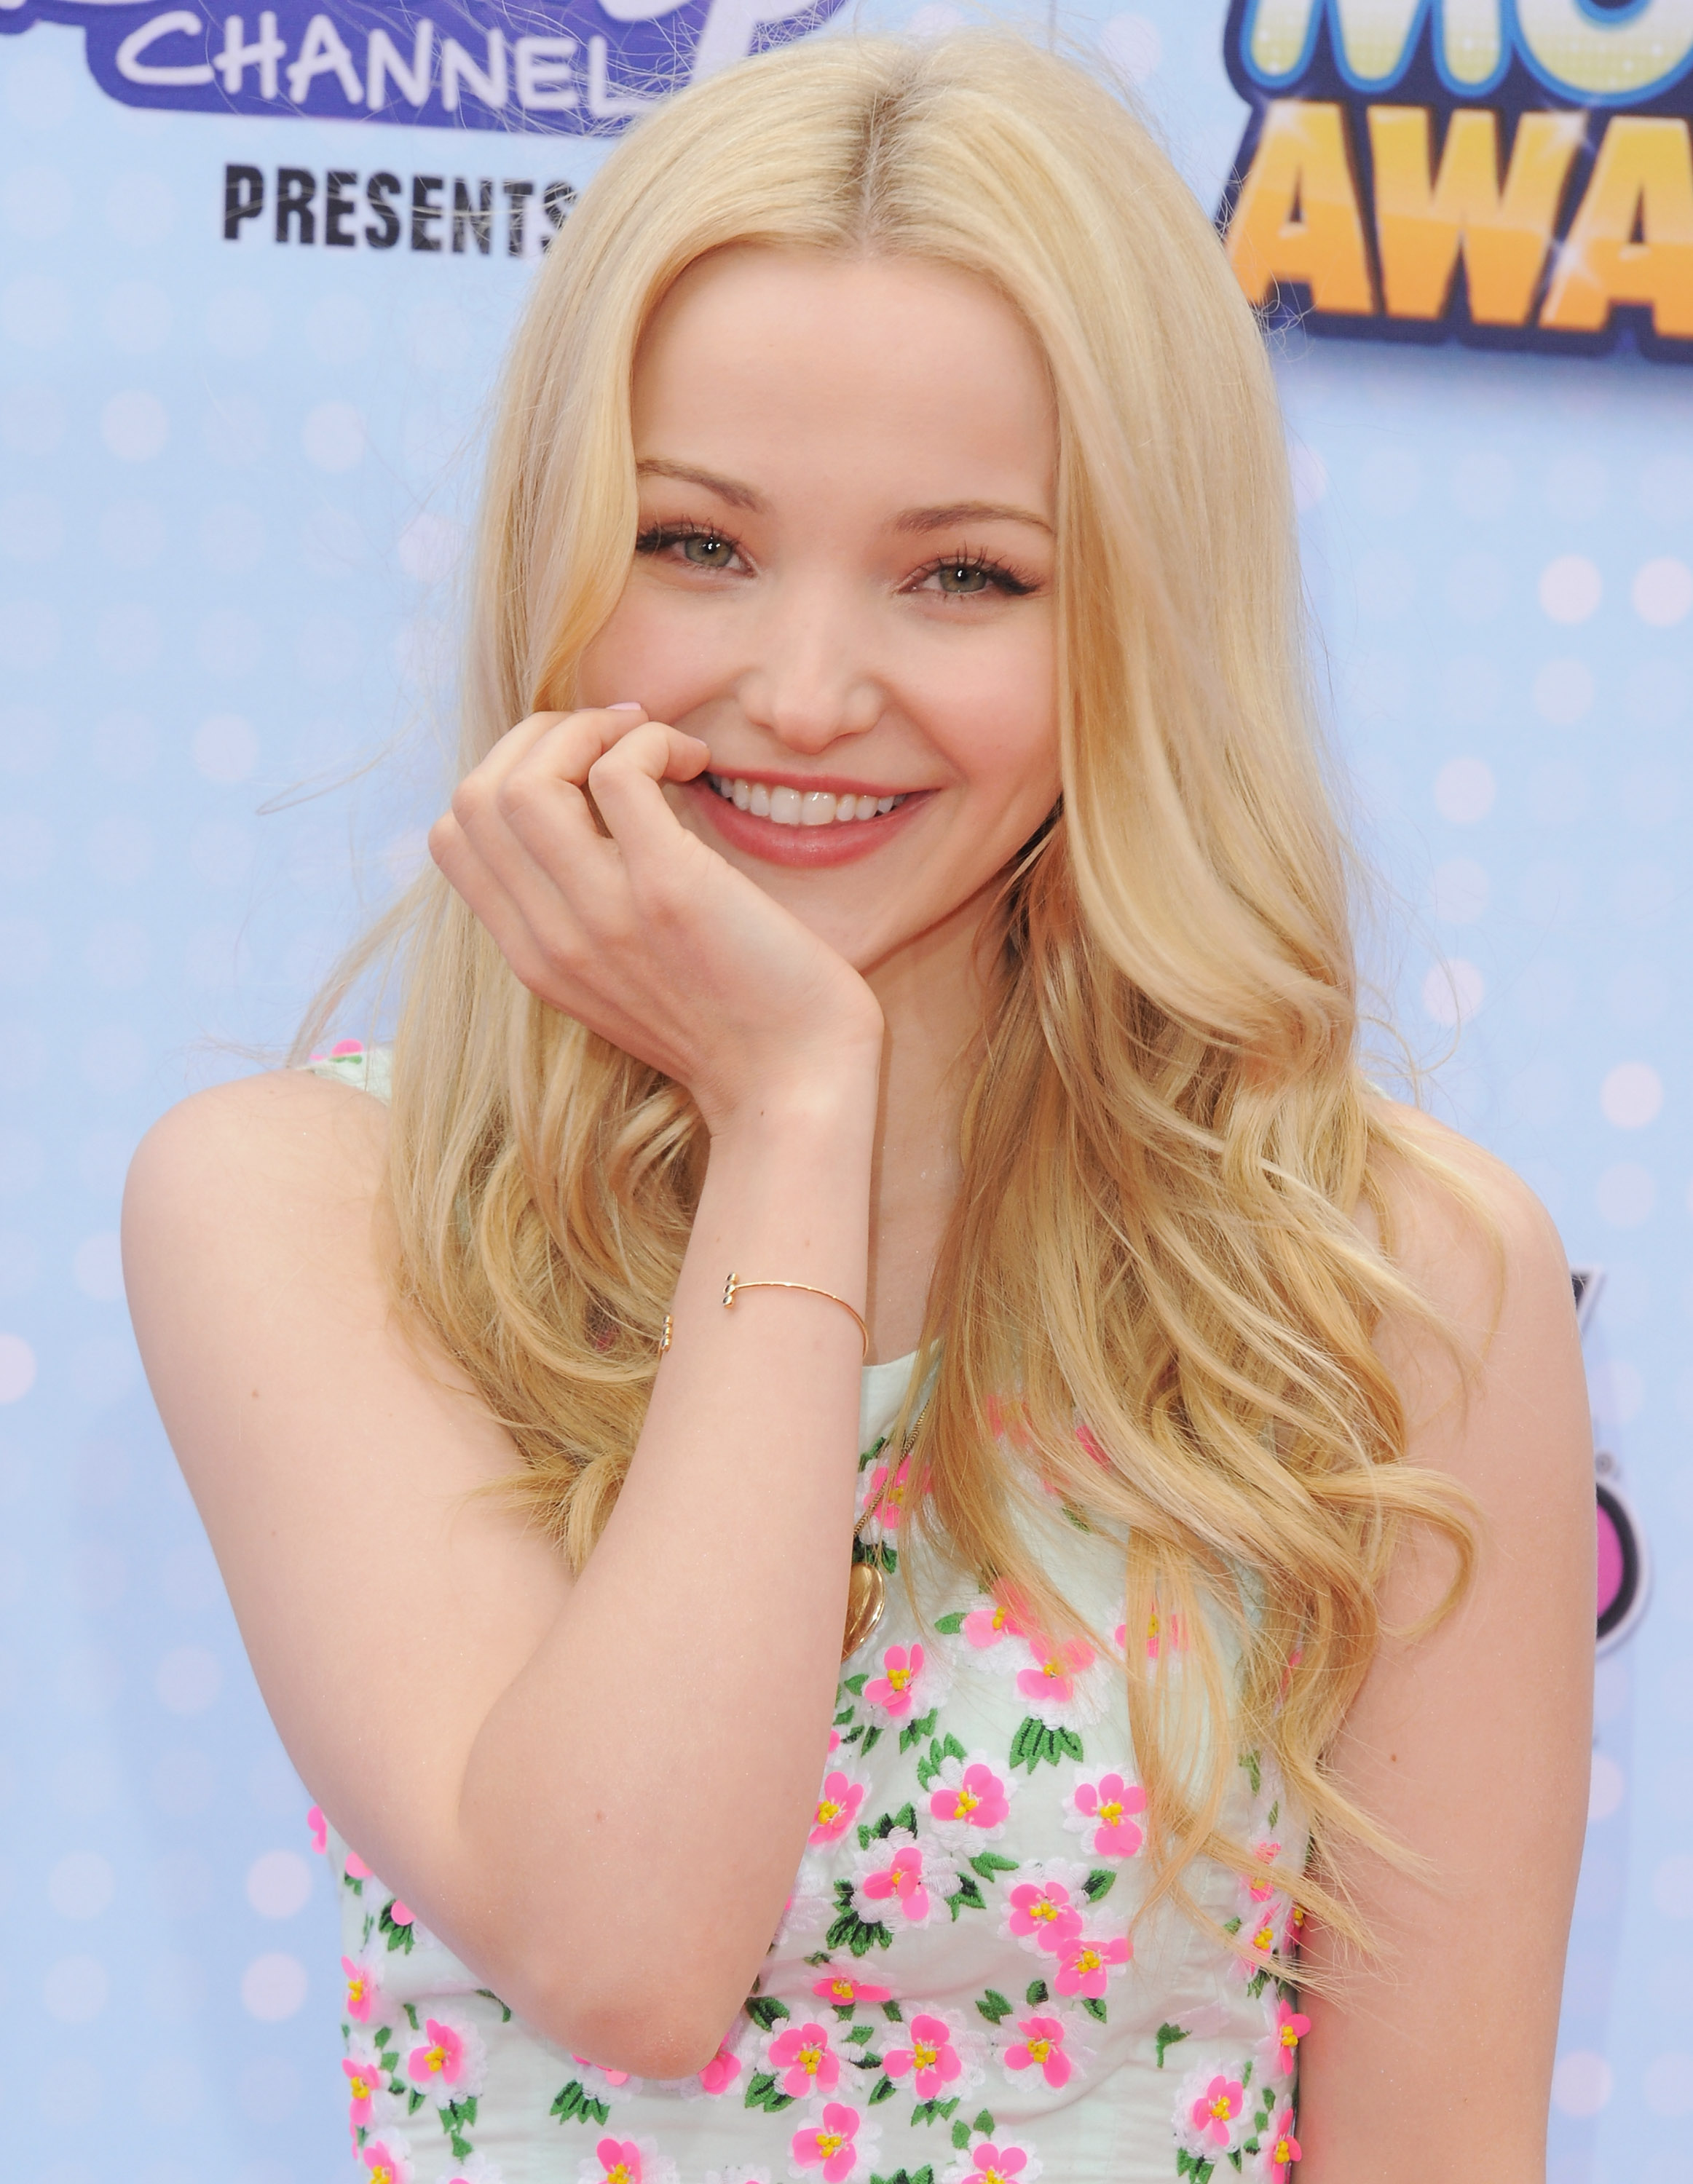 LOS ANGELES, CA - APRIL 25: Actress Dove Cameron arrives at the 2015 Radio Disney Music Awards at Nokia Theatre L.A. Live on April 25, 2015 in Los Angeles, California. (Photo by Jon Kopaloff/FilmMagic)